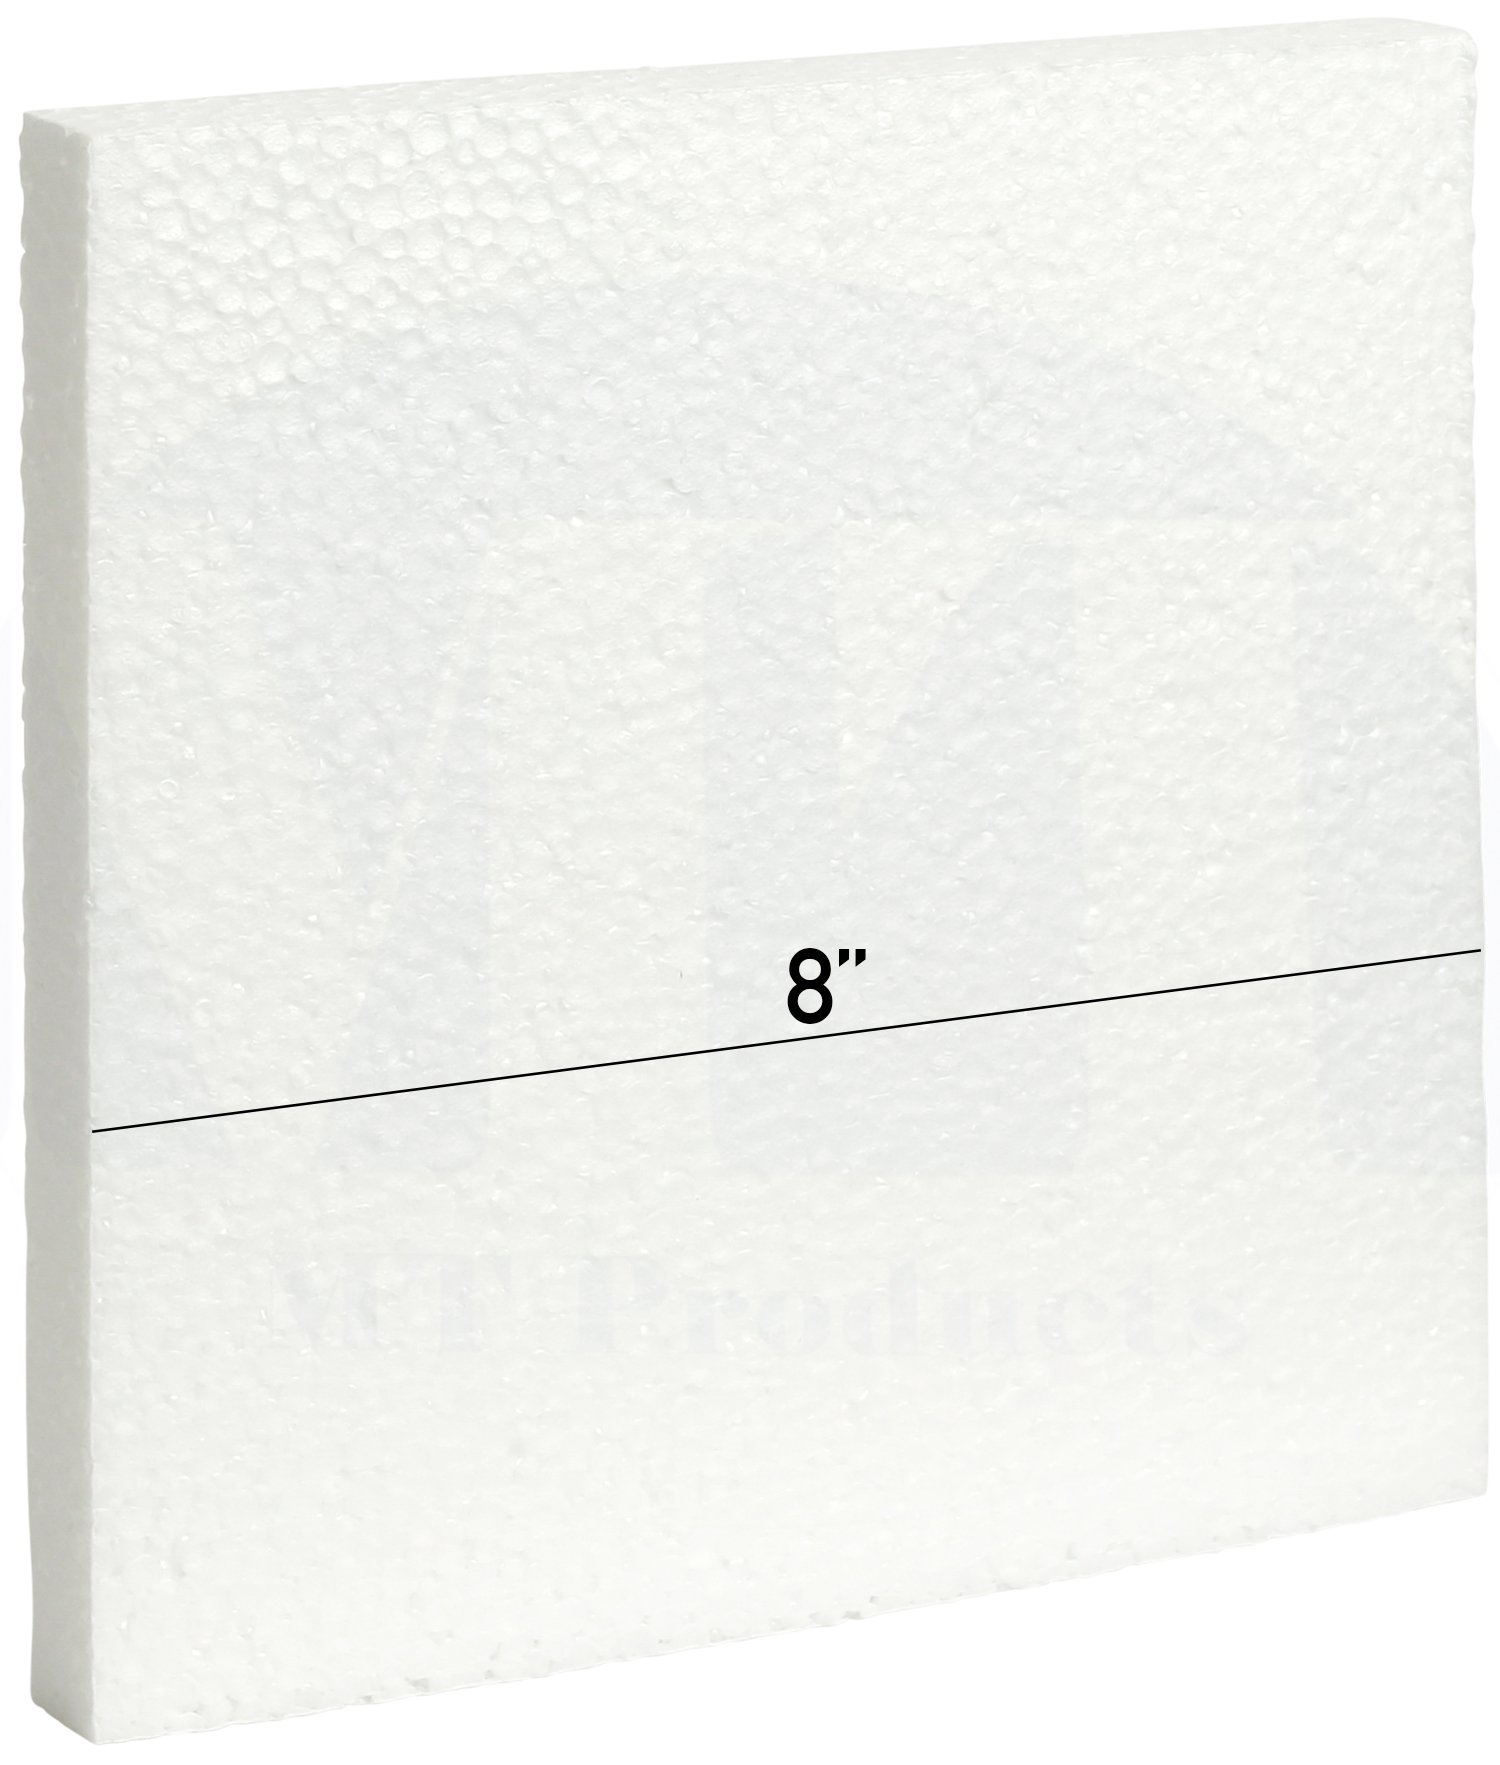 MT Products White EPS Foam Craft Pad/Sheet 1/2 in Thick (8 in x 8 in x 1/2)(10 Pieces)